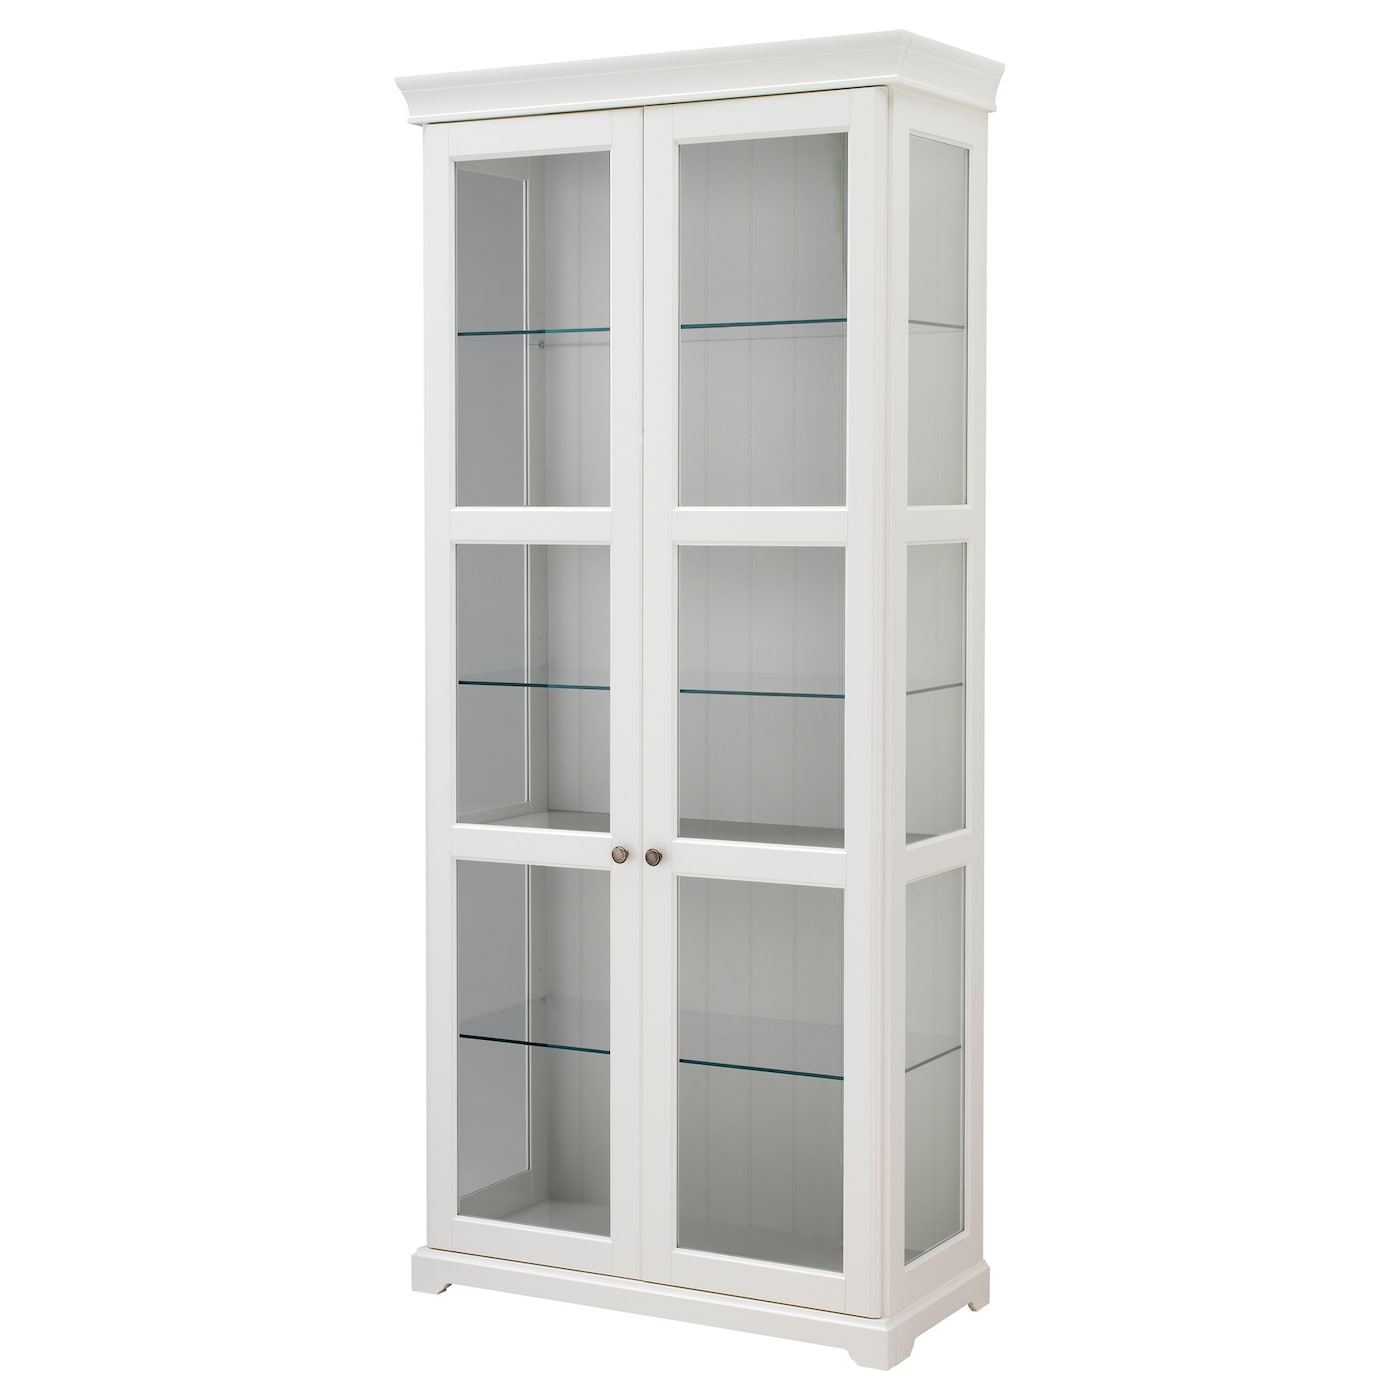 liatorp glass door cabinet white 96x214 cm ikea. Black Bedroom Furniture Sets. Home Design Ideas